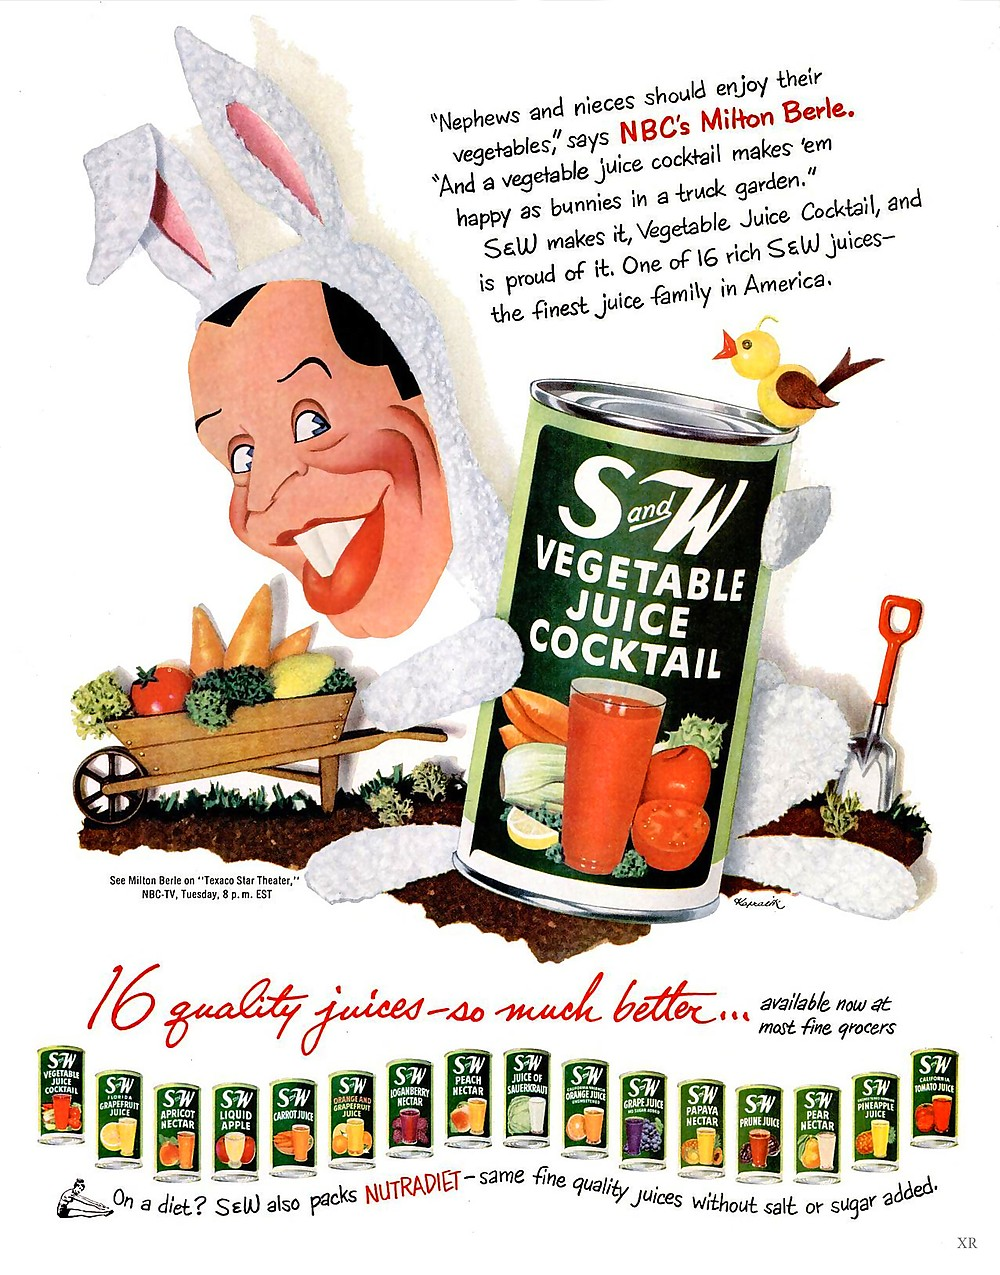 Milton Berle for Straight & Wide Vegetable Juice Cocktail. This 1952 ad was designed by the inimitable, Jacques Kapralik.